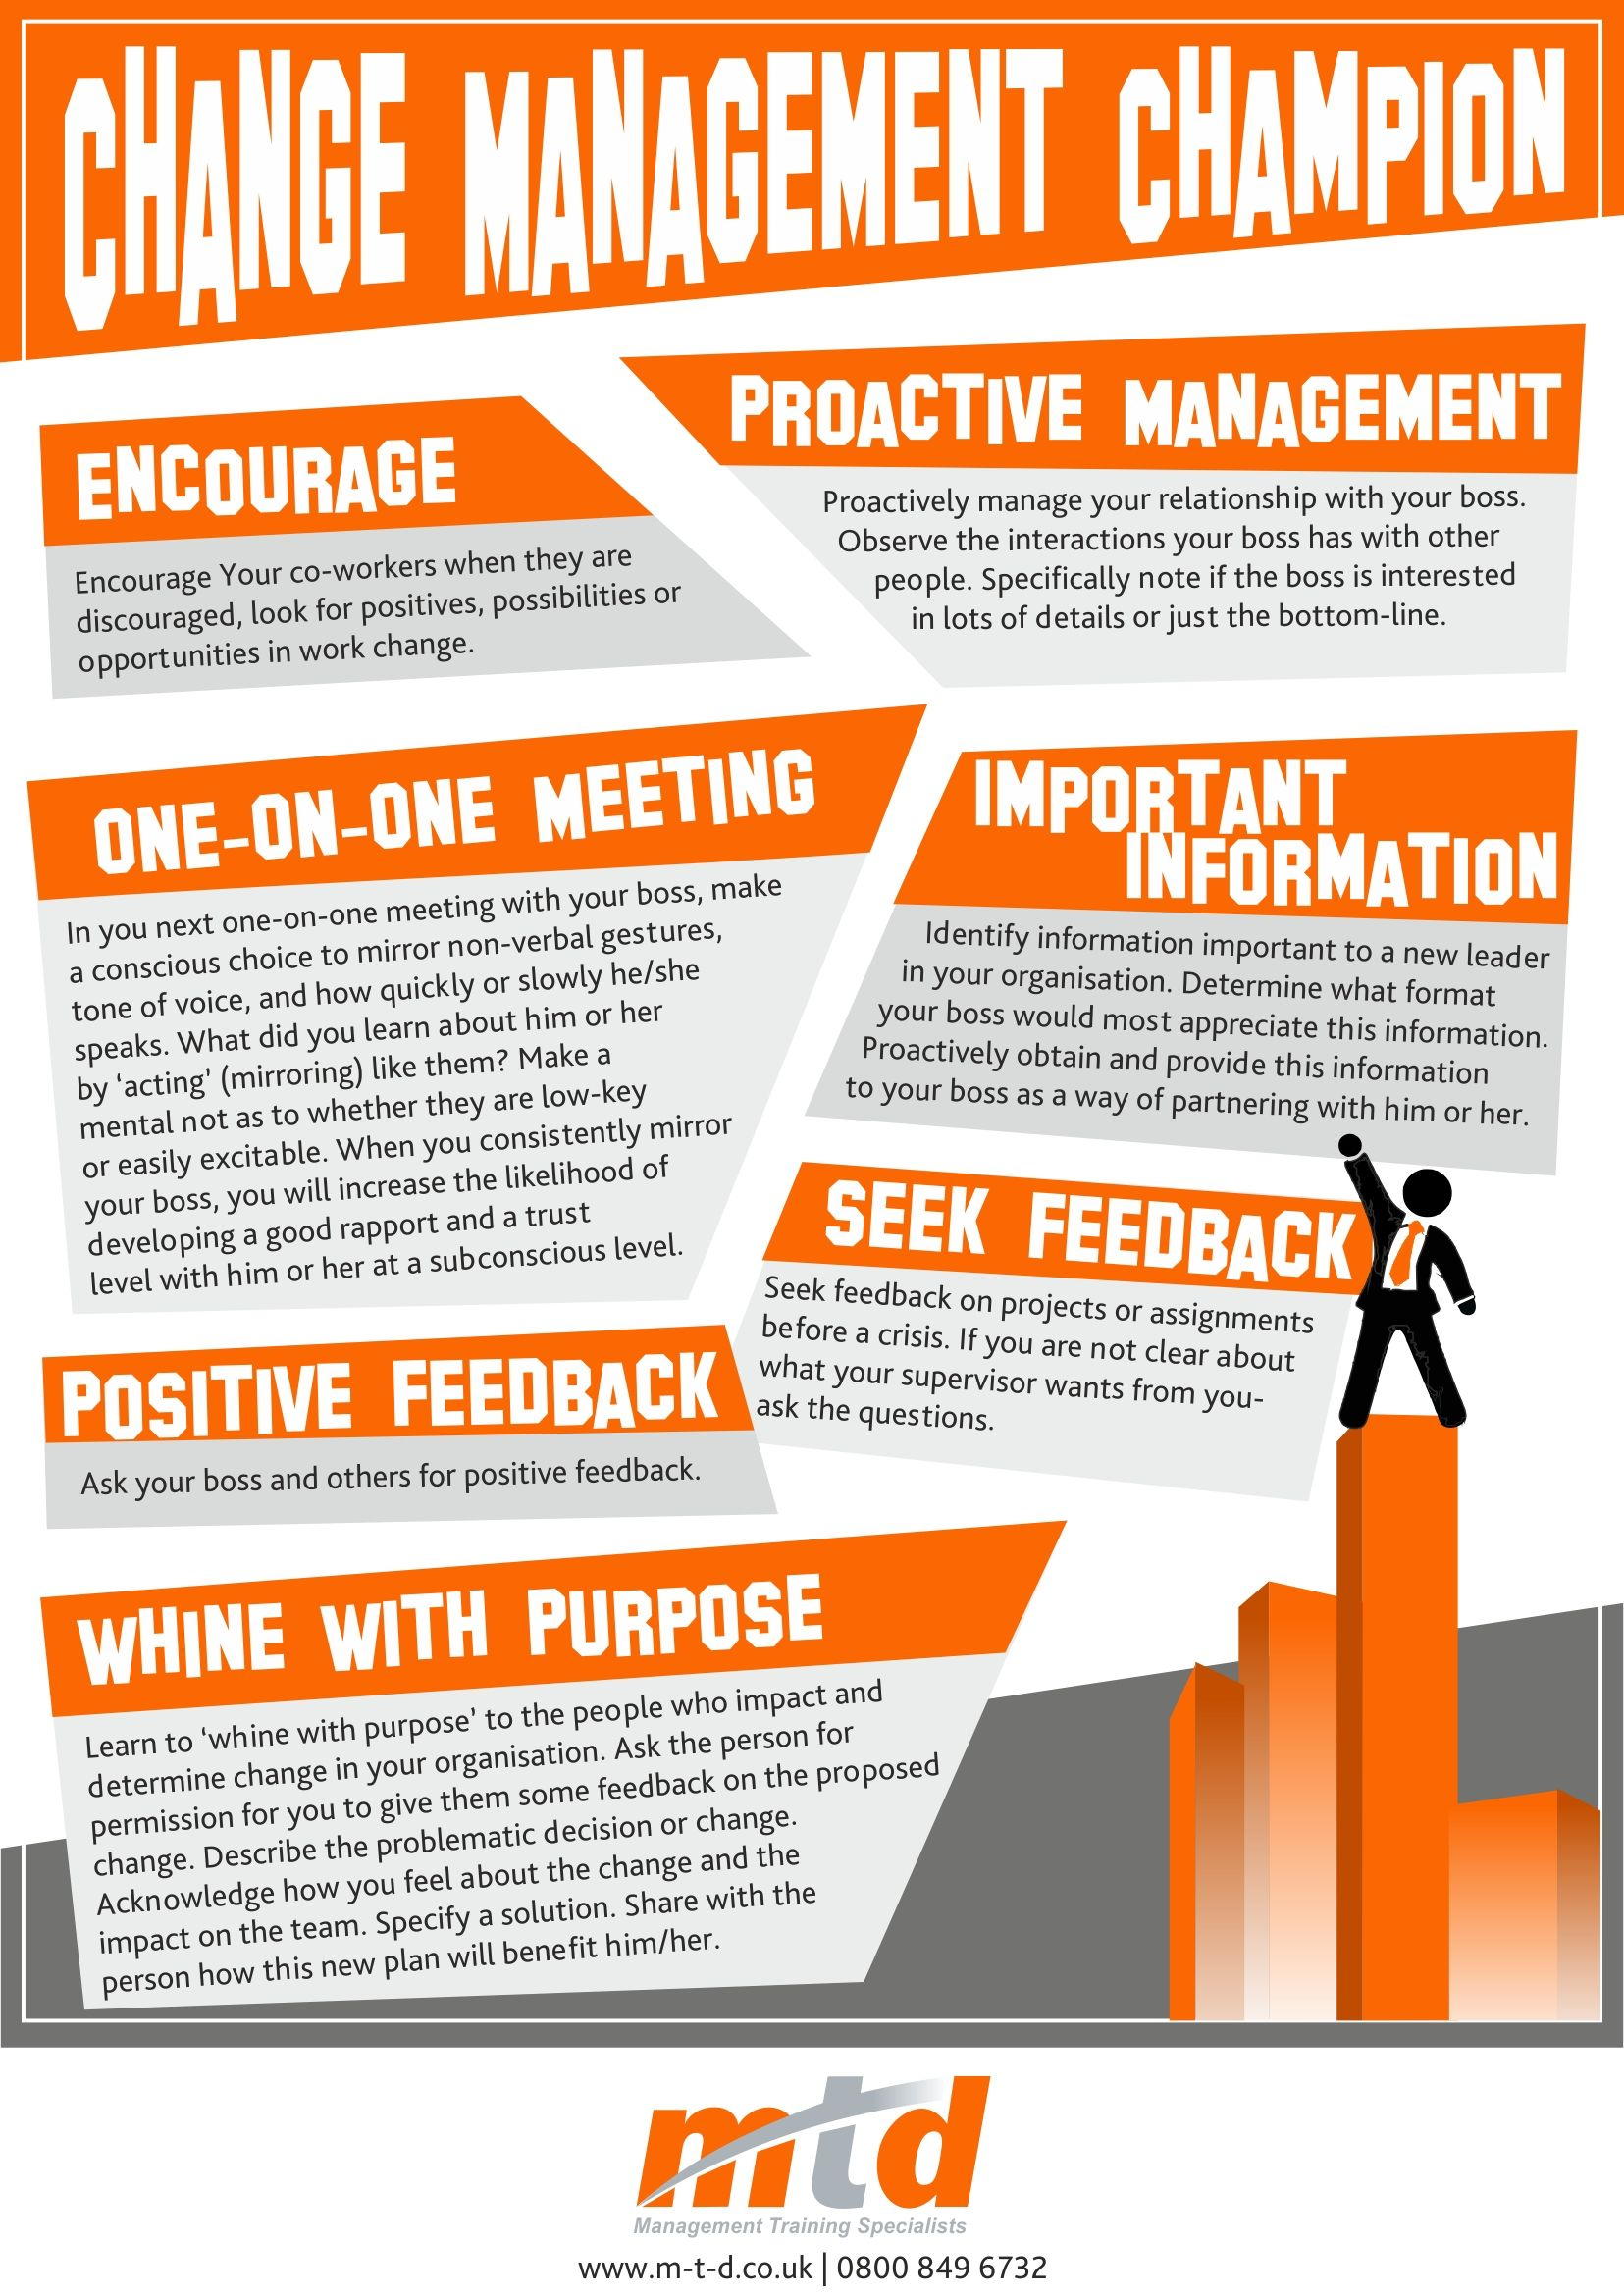 Pin by Fareeha Qayoom on Work | Change management ...